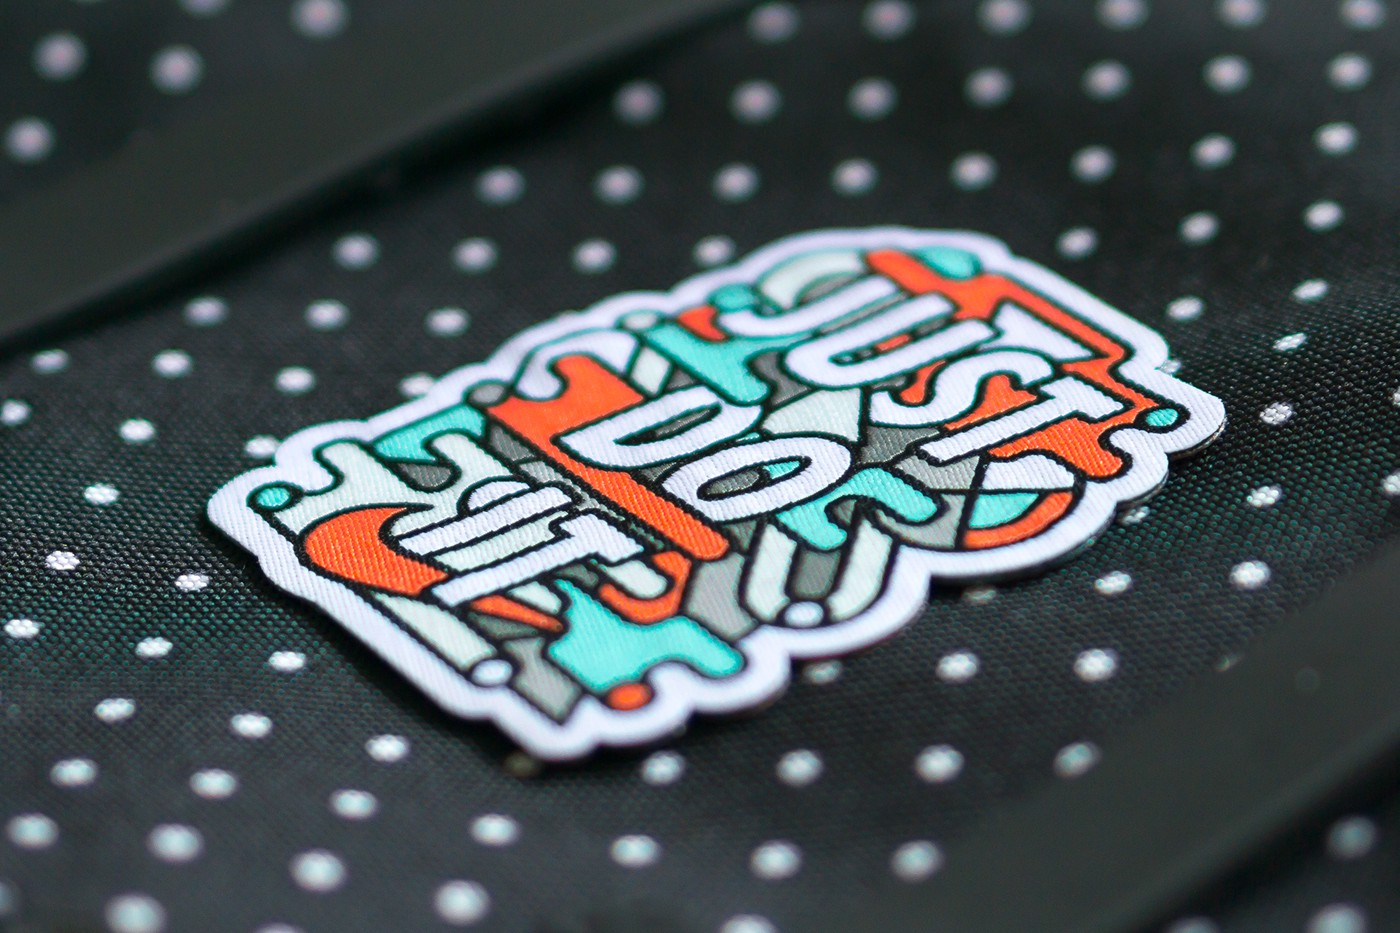 Beautiful And Creative Graphic Design Project Ideas